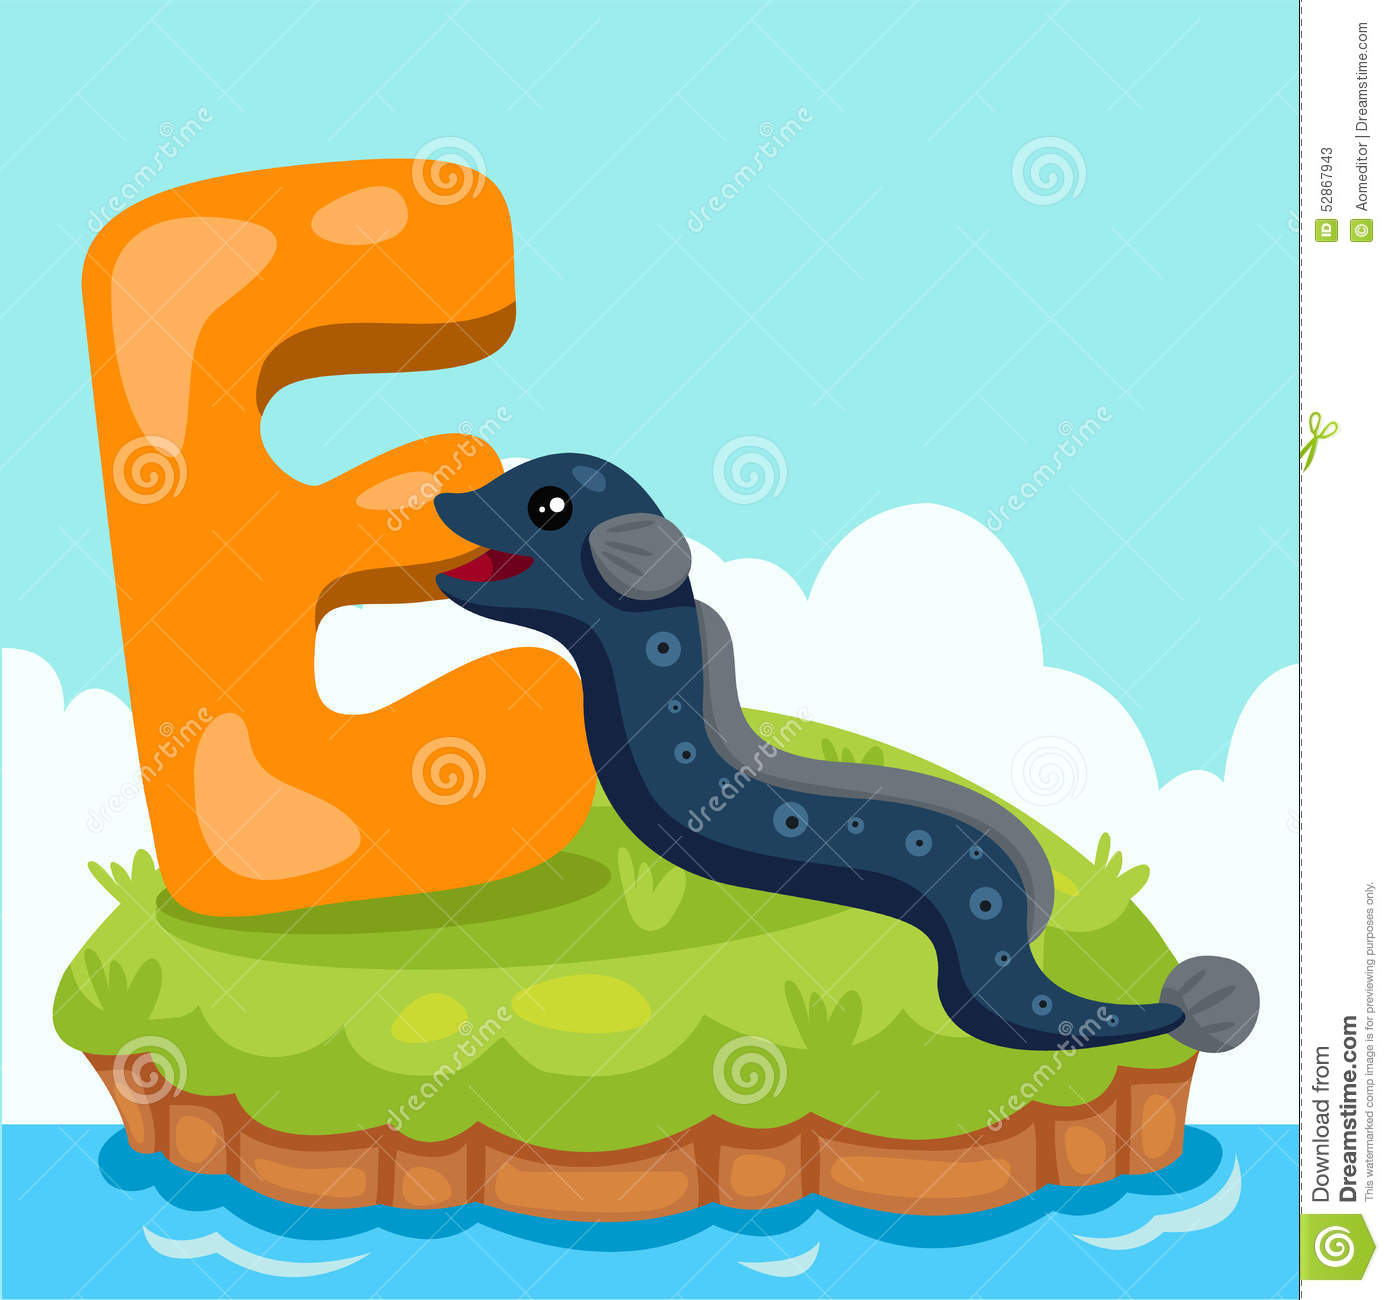 hight resolution of illustrator of letter e is for eel